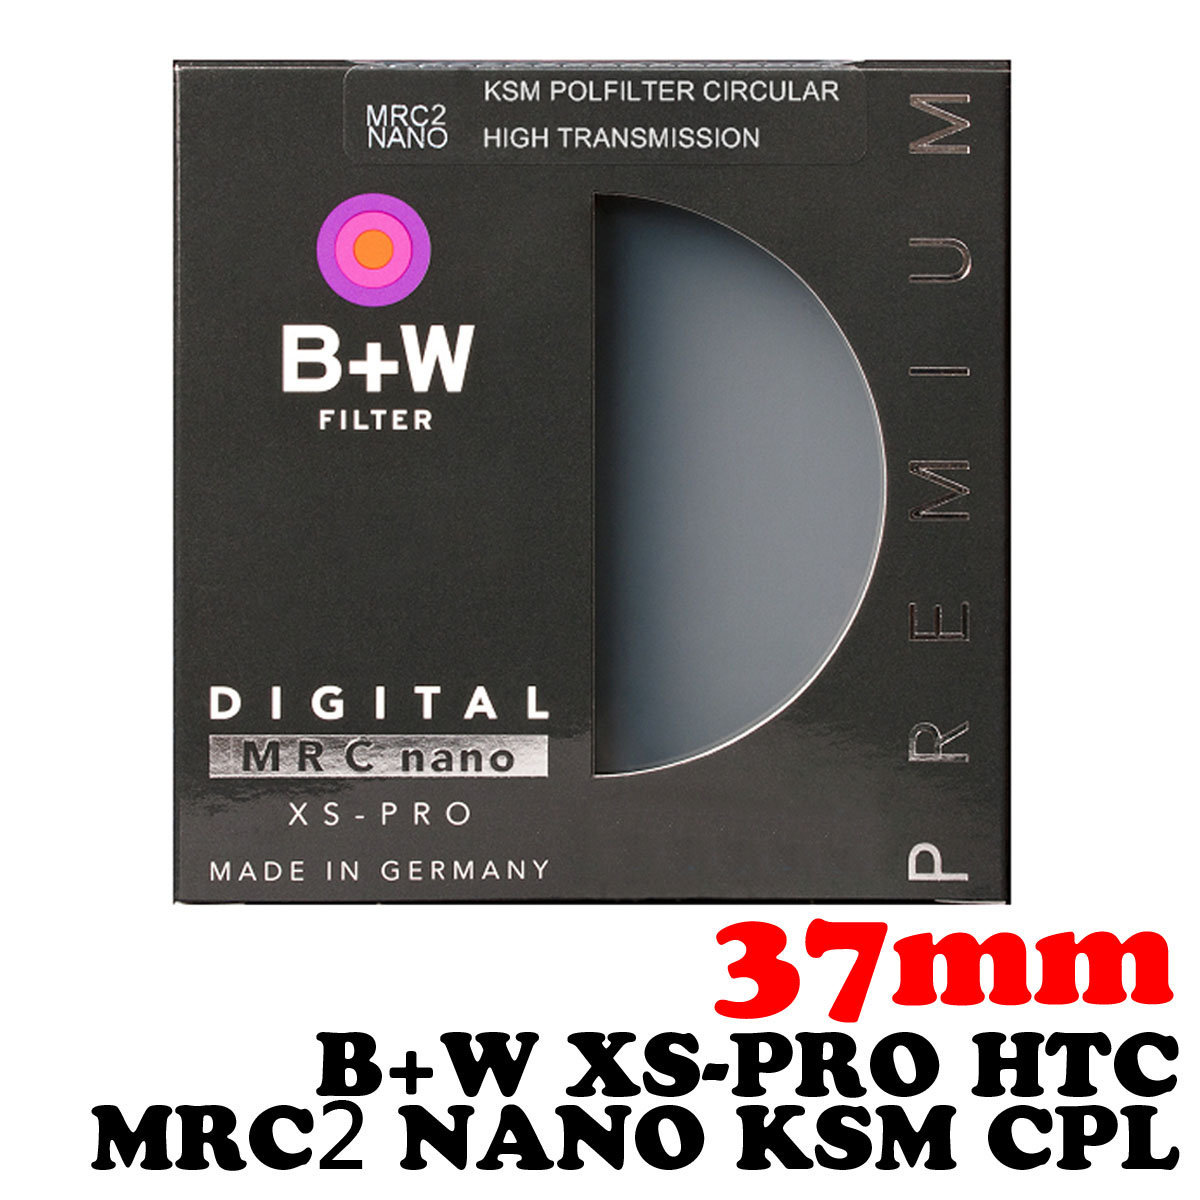 37mm XS-Pro HTC KSM MRC2 Nano CPL Slim Filter High Transmission Circular Polarizer